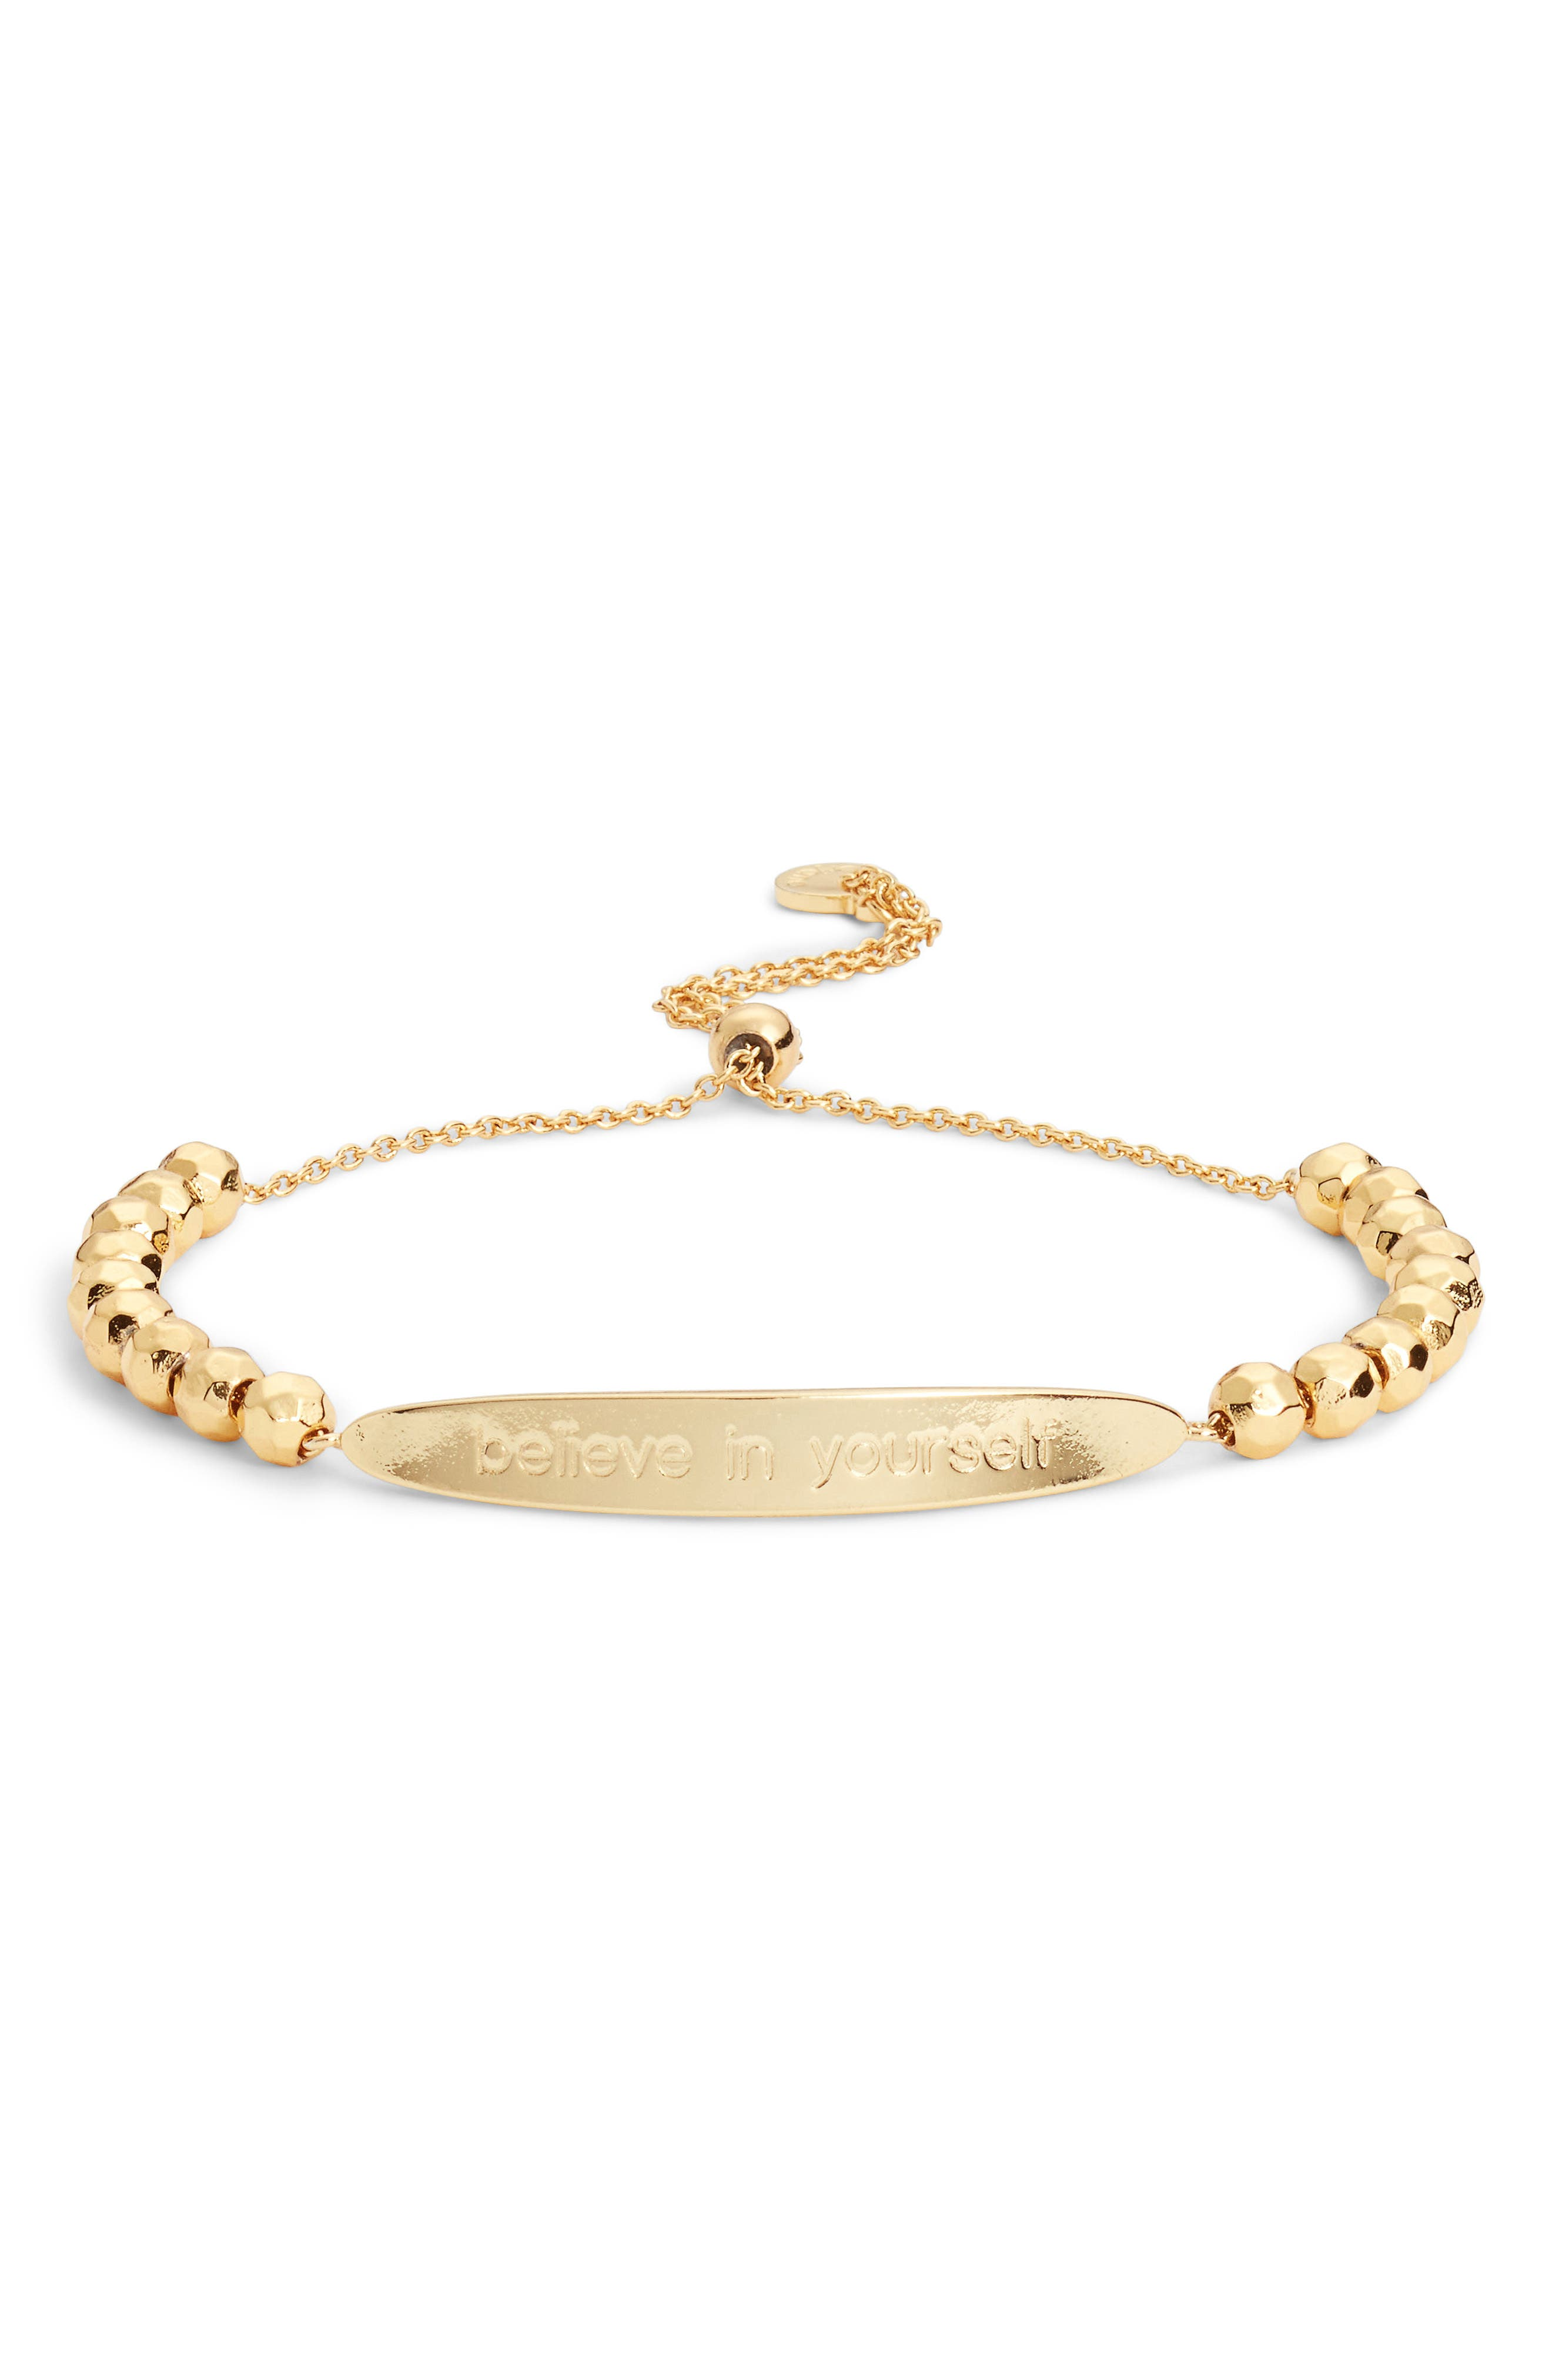 Power Intention Believe in Yourself Bracelet,                         Main,                         color, Gold